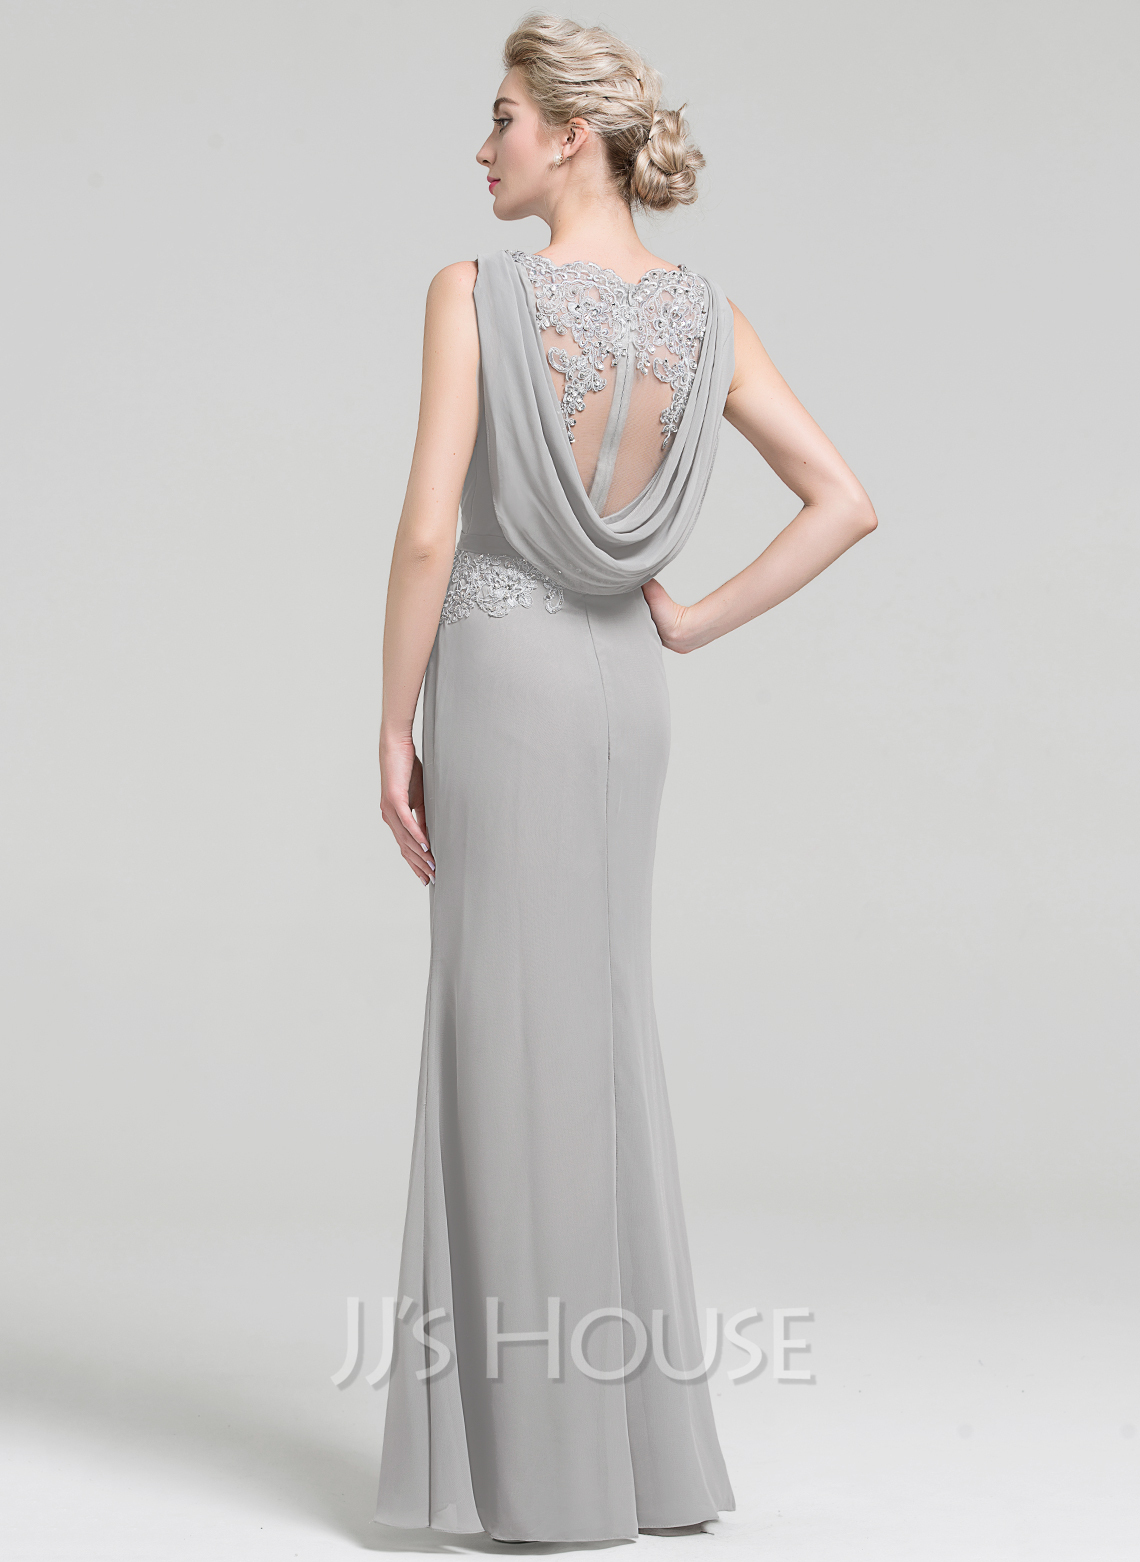 bc766c69167 Sheath Column Scoop Neck Floor-Length Chiffon Lace Evening Dress With  Ruffle Beading Sequins. Loading zoom